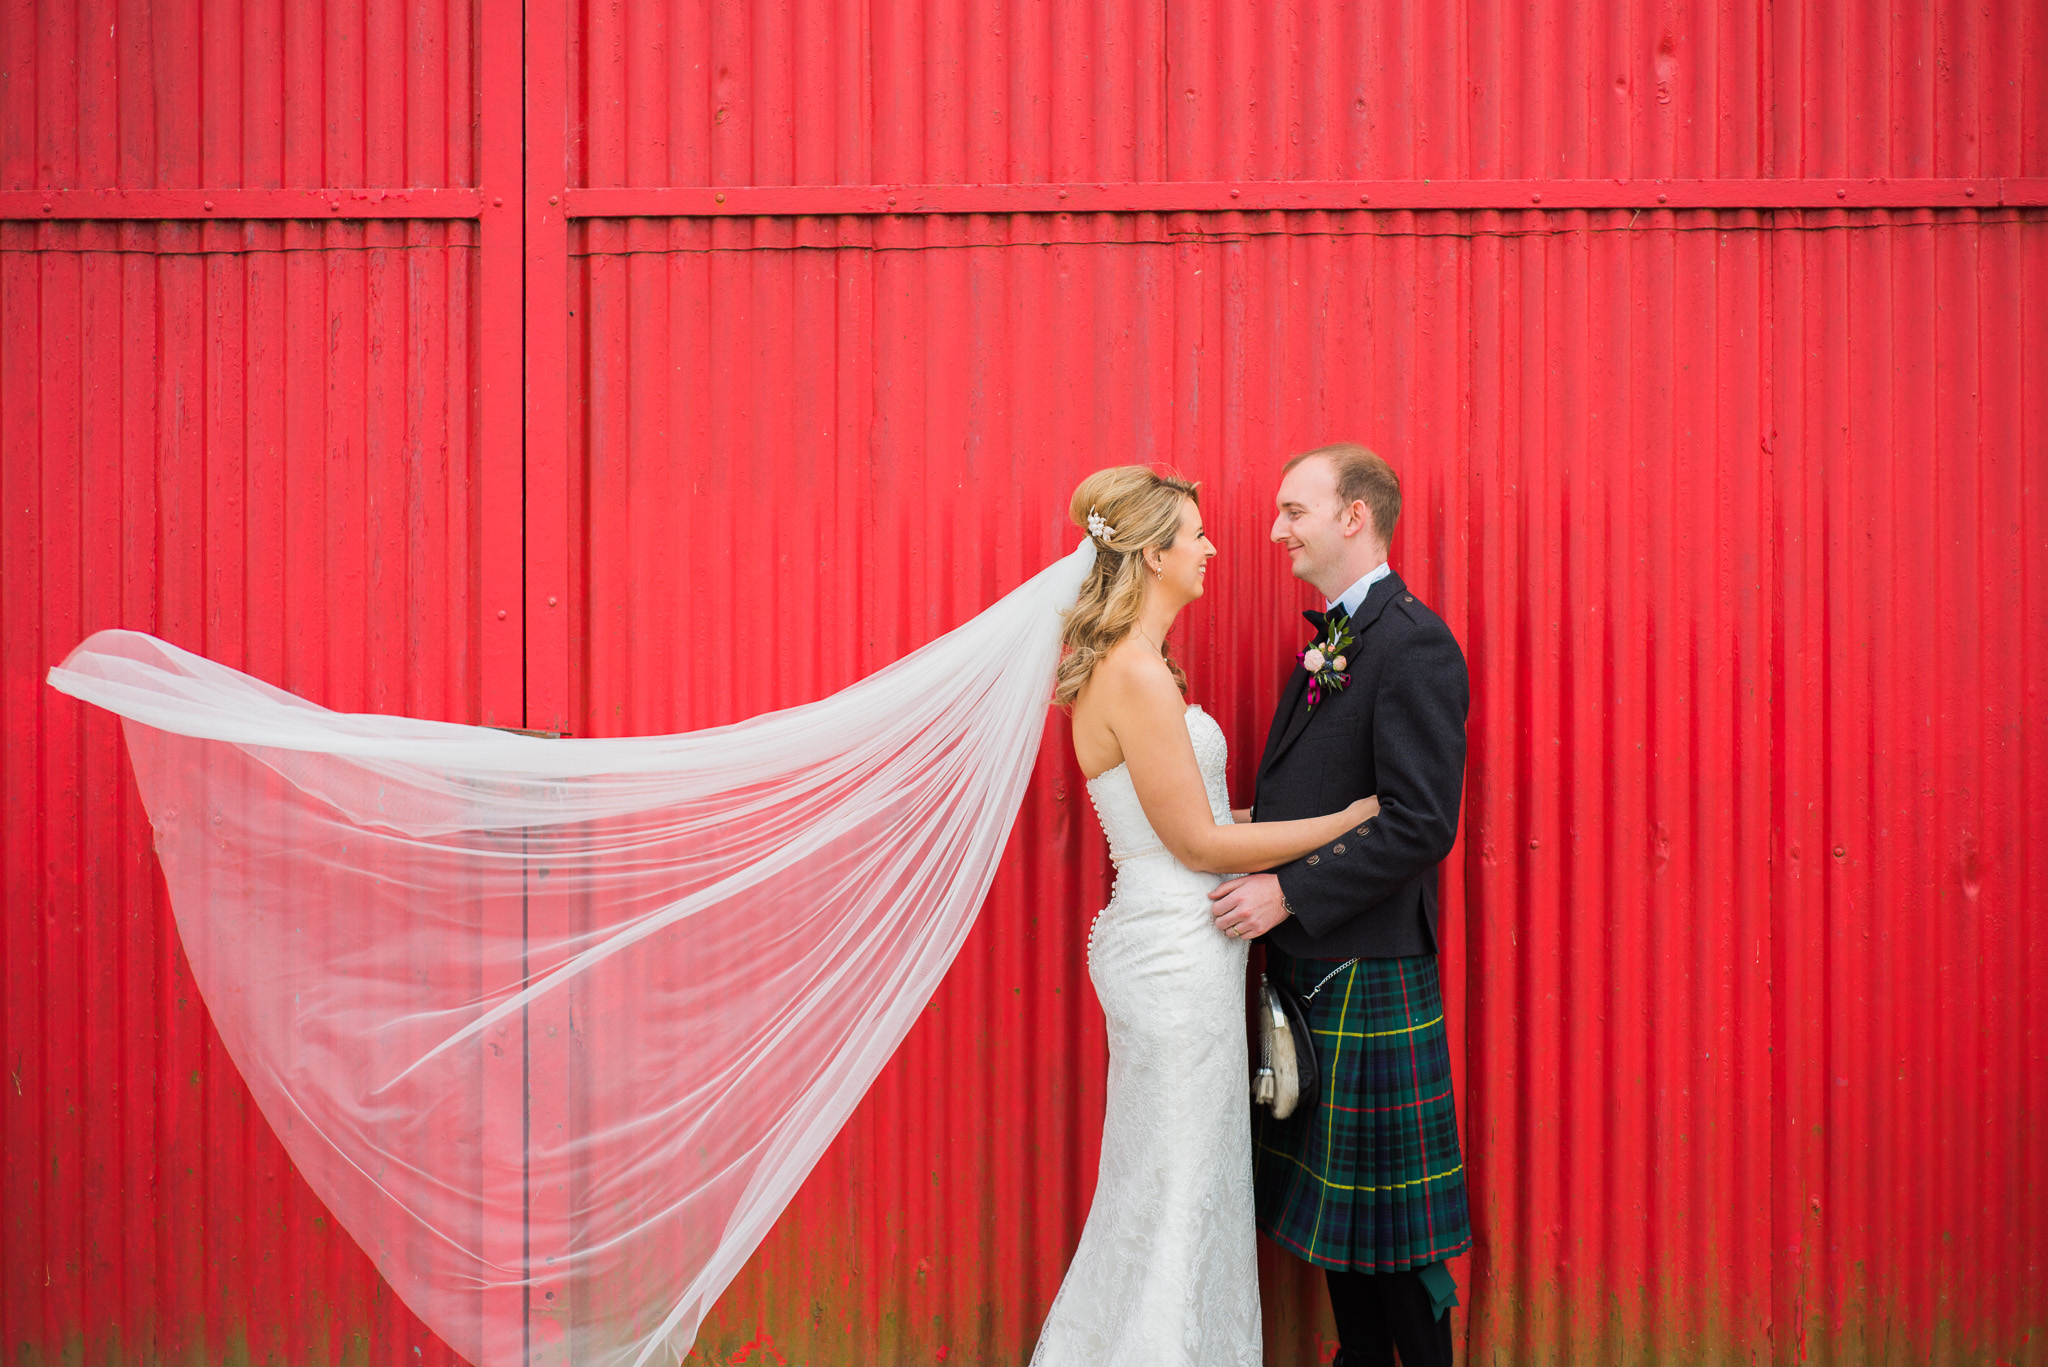 Wedding Veil at Kinkell Byre